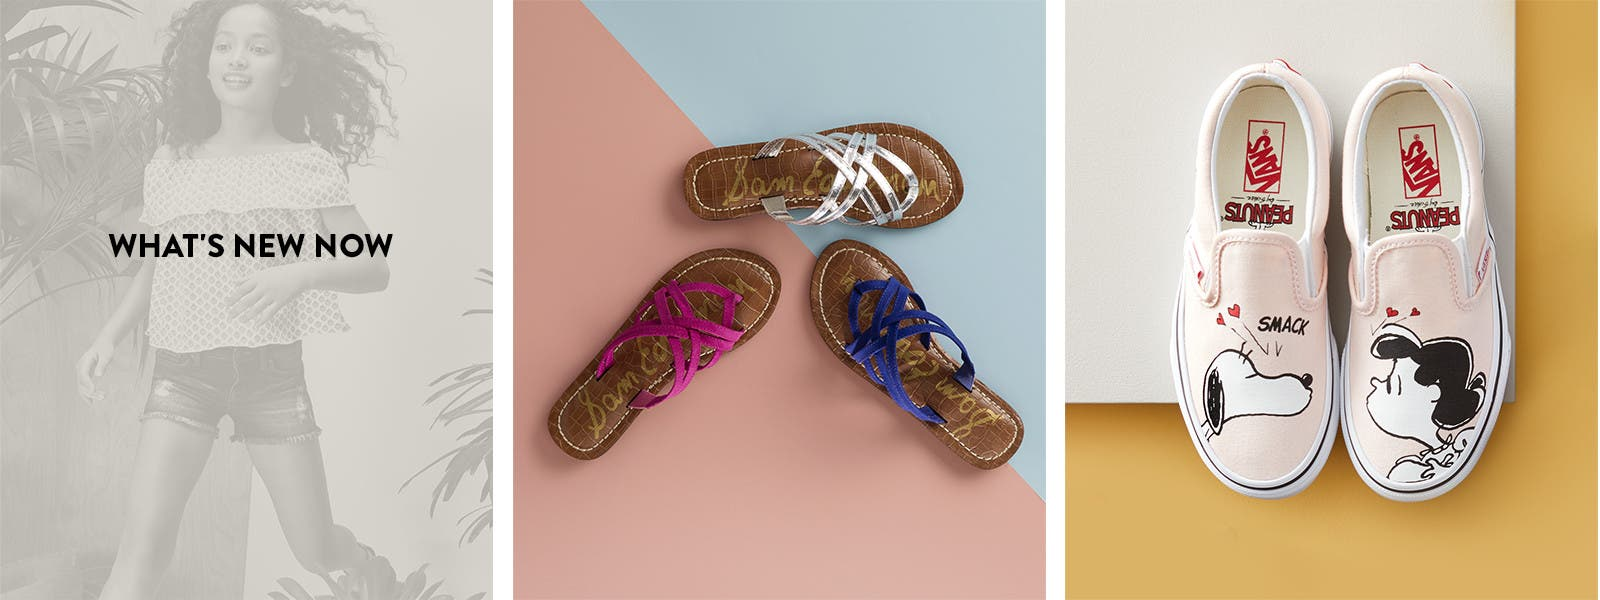 New summer sandals, slip-ons and sneakers for girls.